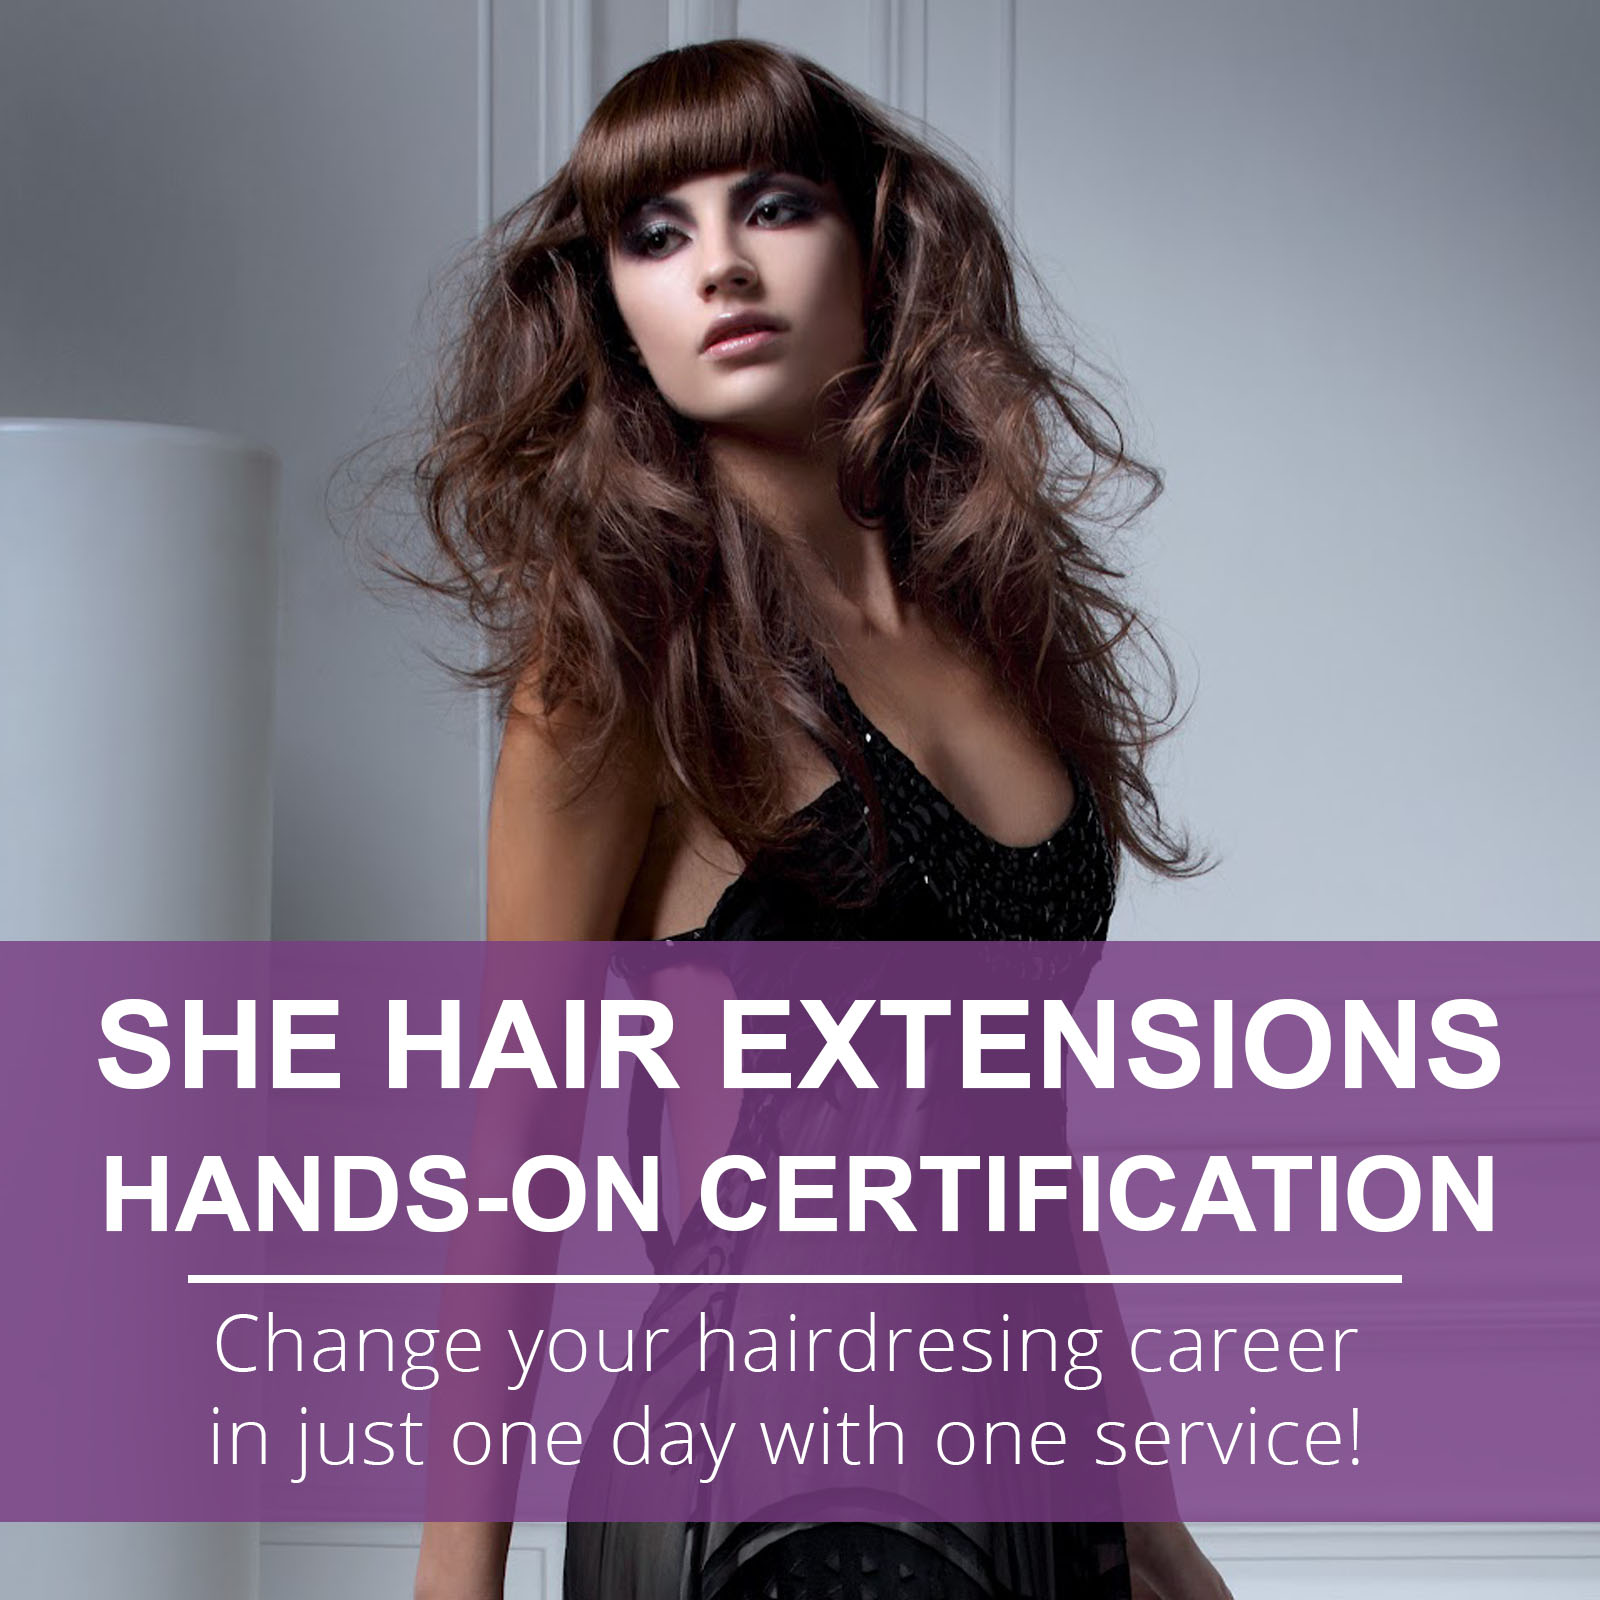 She Hair Extensions Certification Class Hairs The Bling